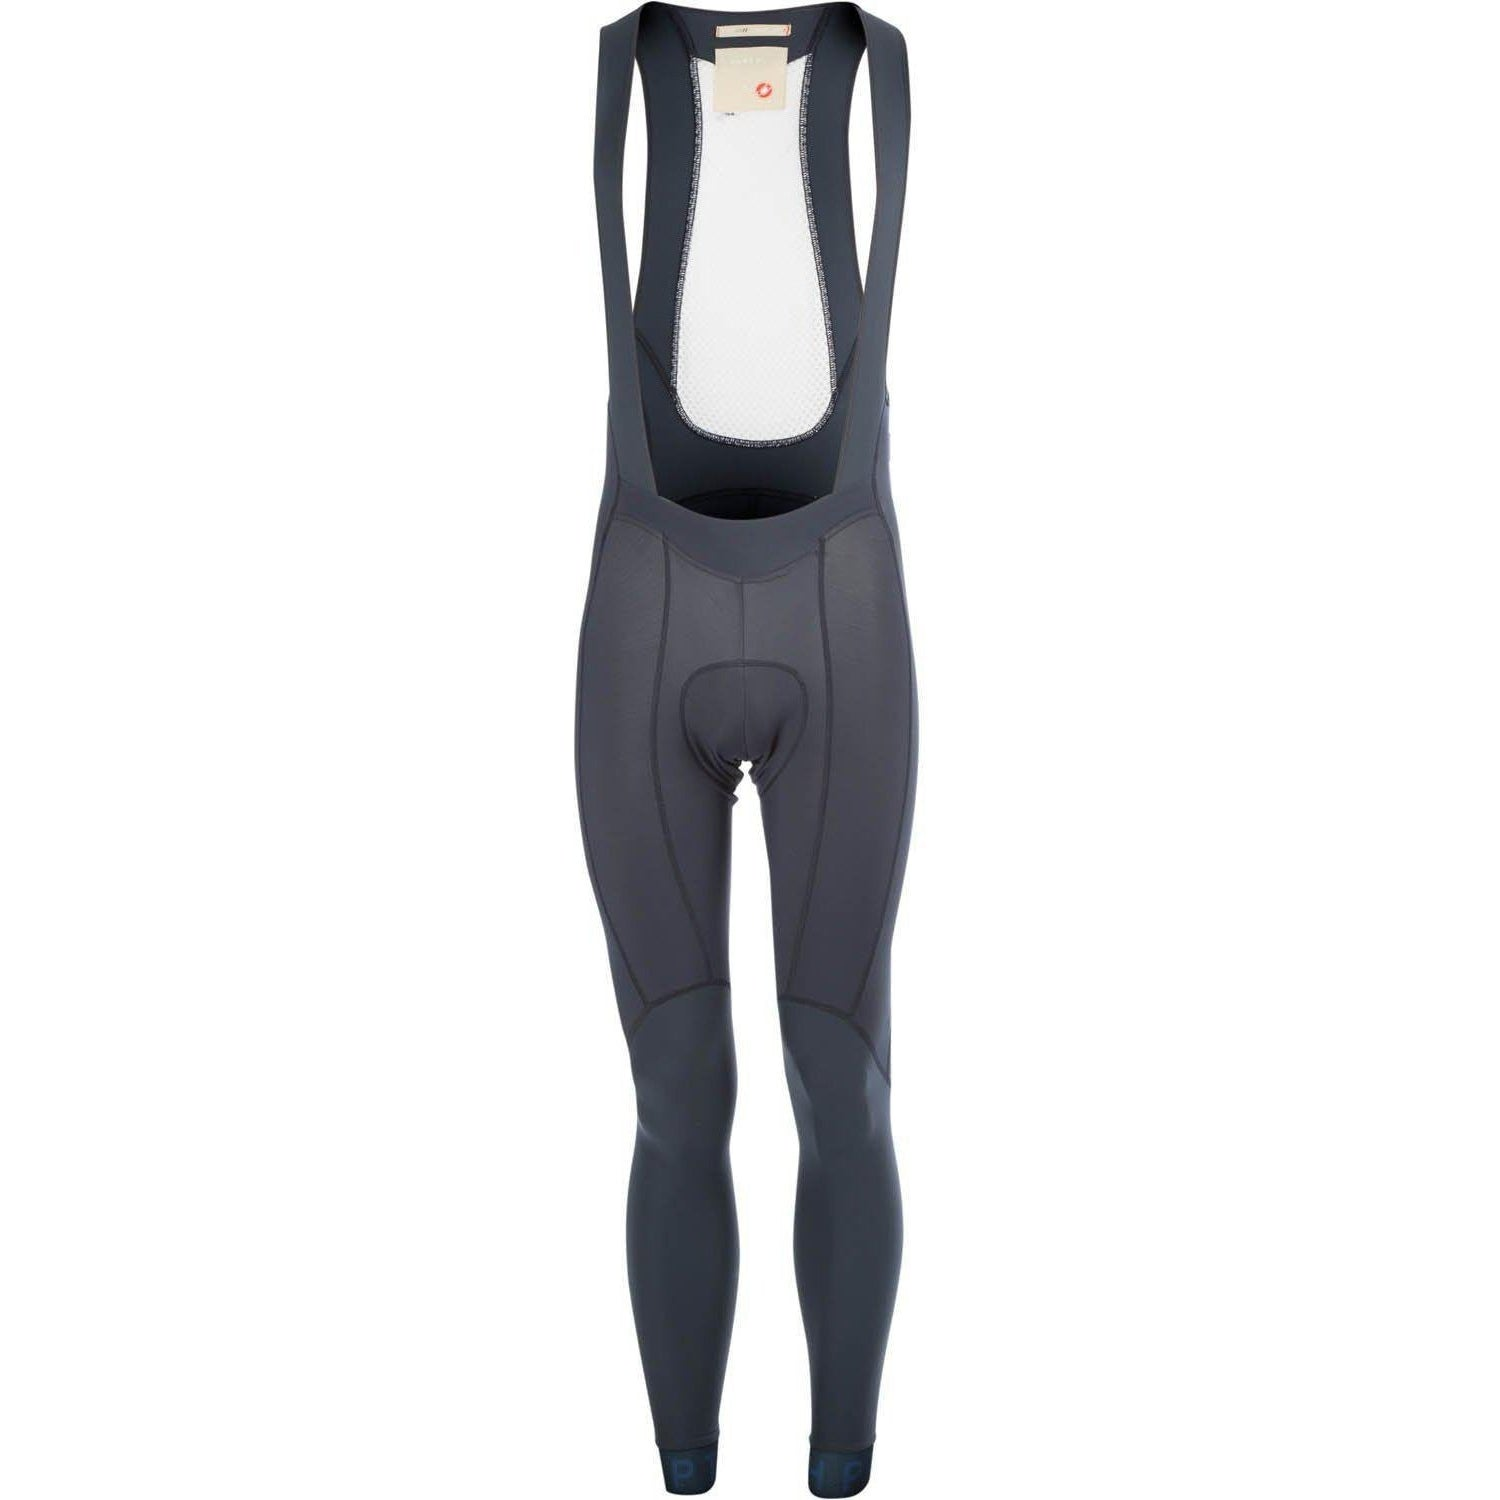 Chpt3-Chpt3 Origin 1.13 Bibtights-Outer Space-29-CST920013307429-saddleback-elite-performance-cycling